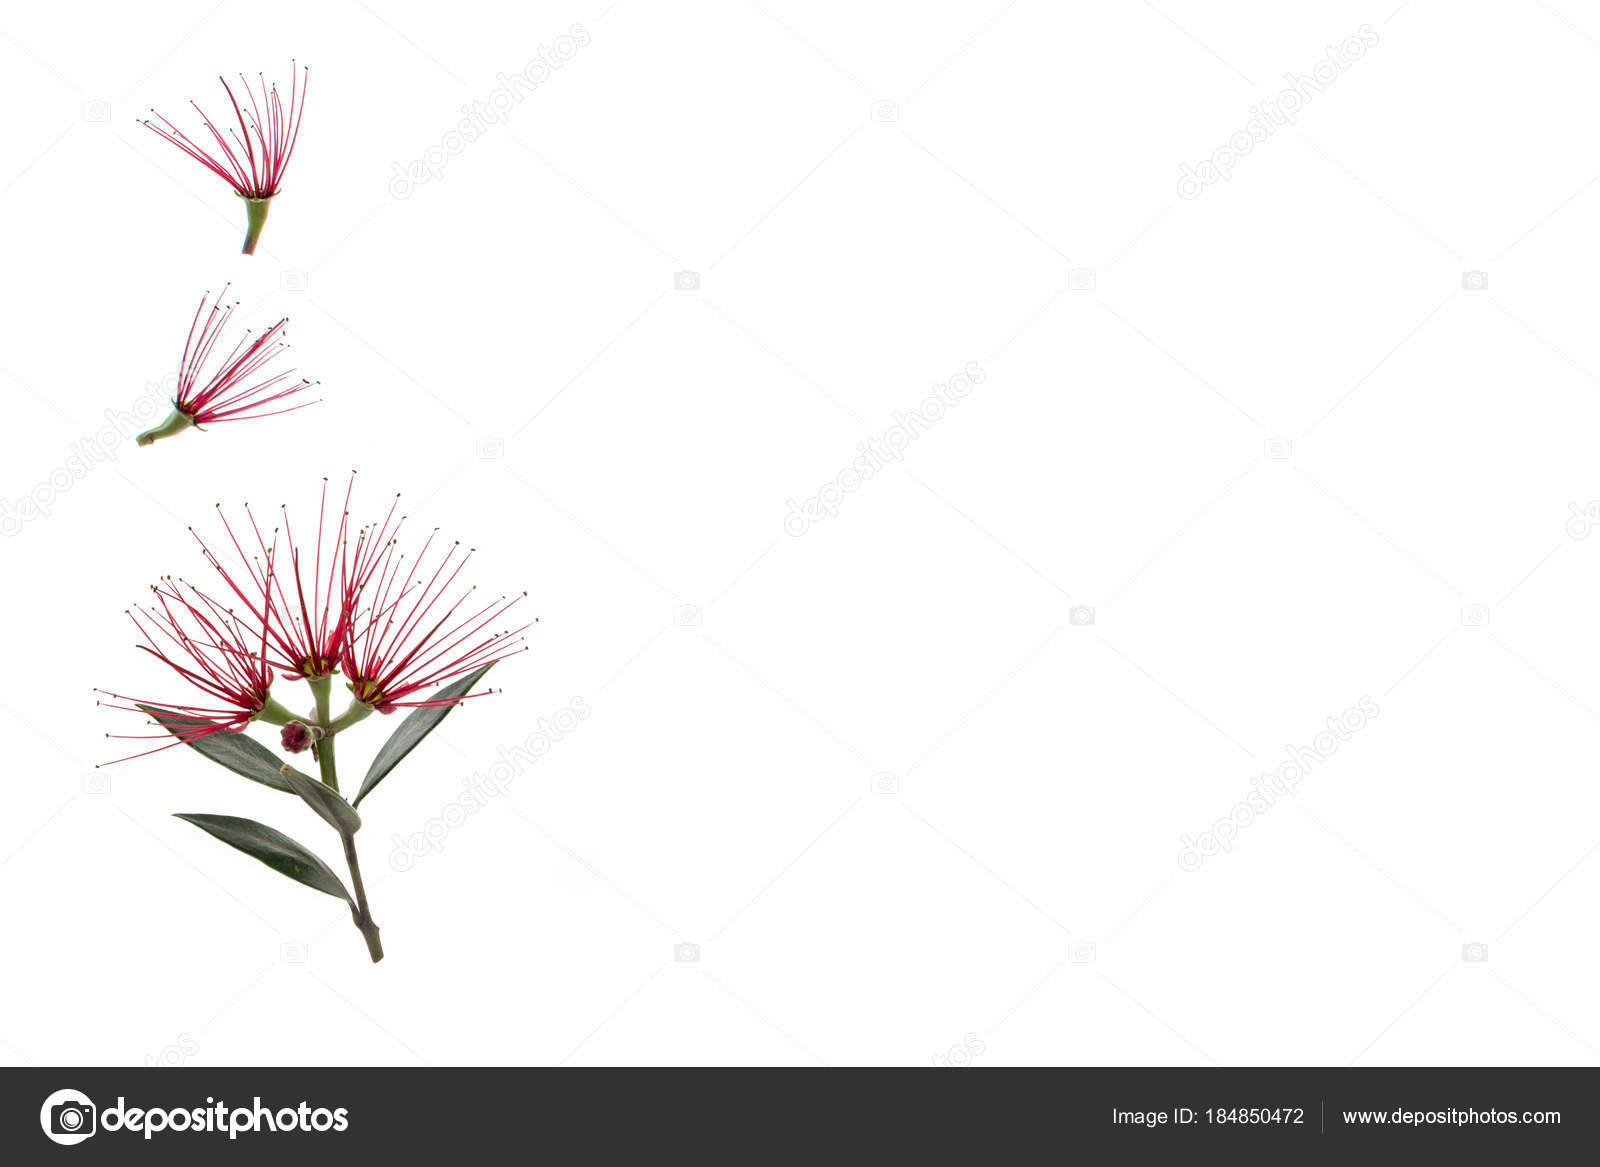 New Zealand Christmas Tree Flowers Isolated White Background Stock